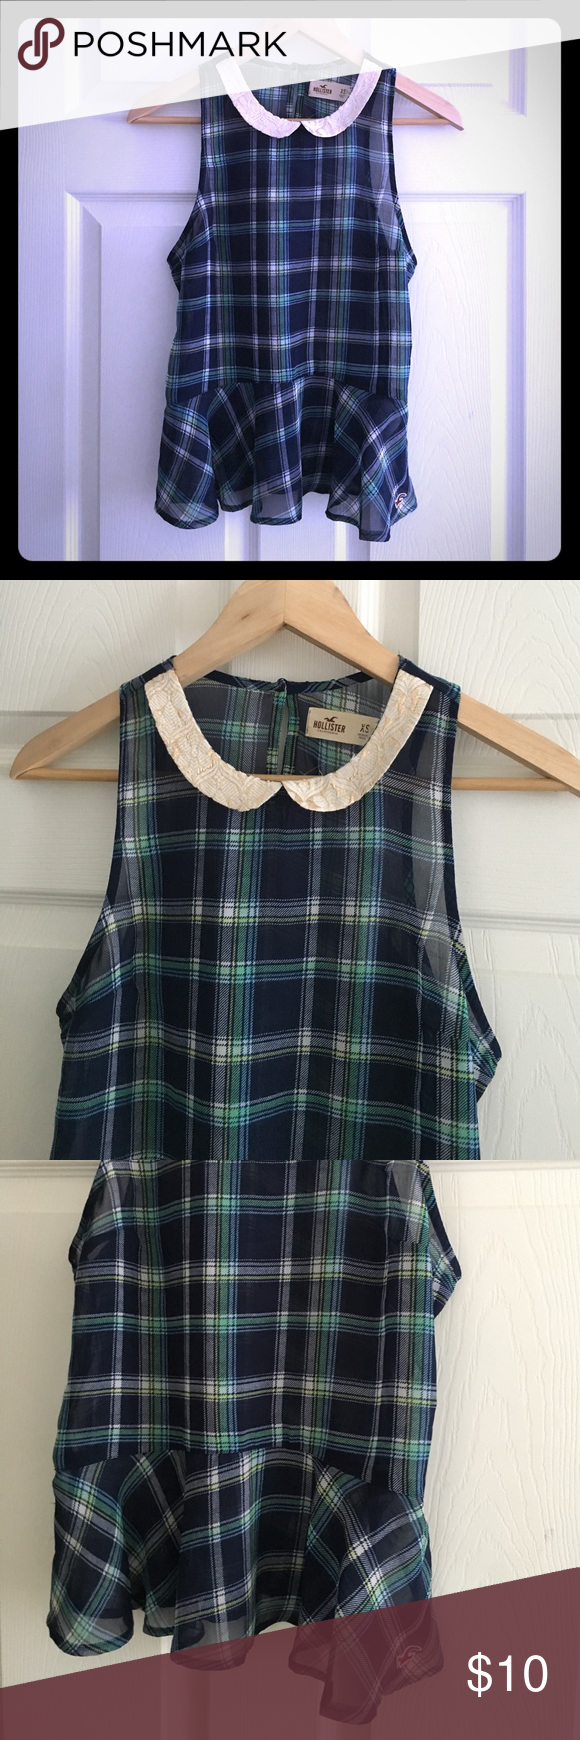 Hollister Sheer Sleeveless Top Size XS Up for sale is Hollister Sheer Sleeveless Top as shown on the photos. Lightweight. Color: Green/Navy. Size XS. Pre-owned. Perfect condition. No tears, holes or stains. Hollister Tops